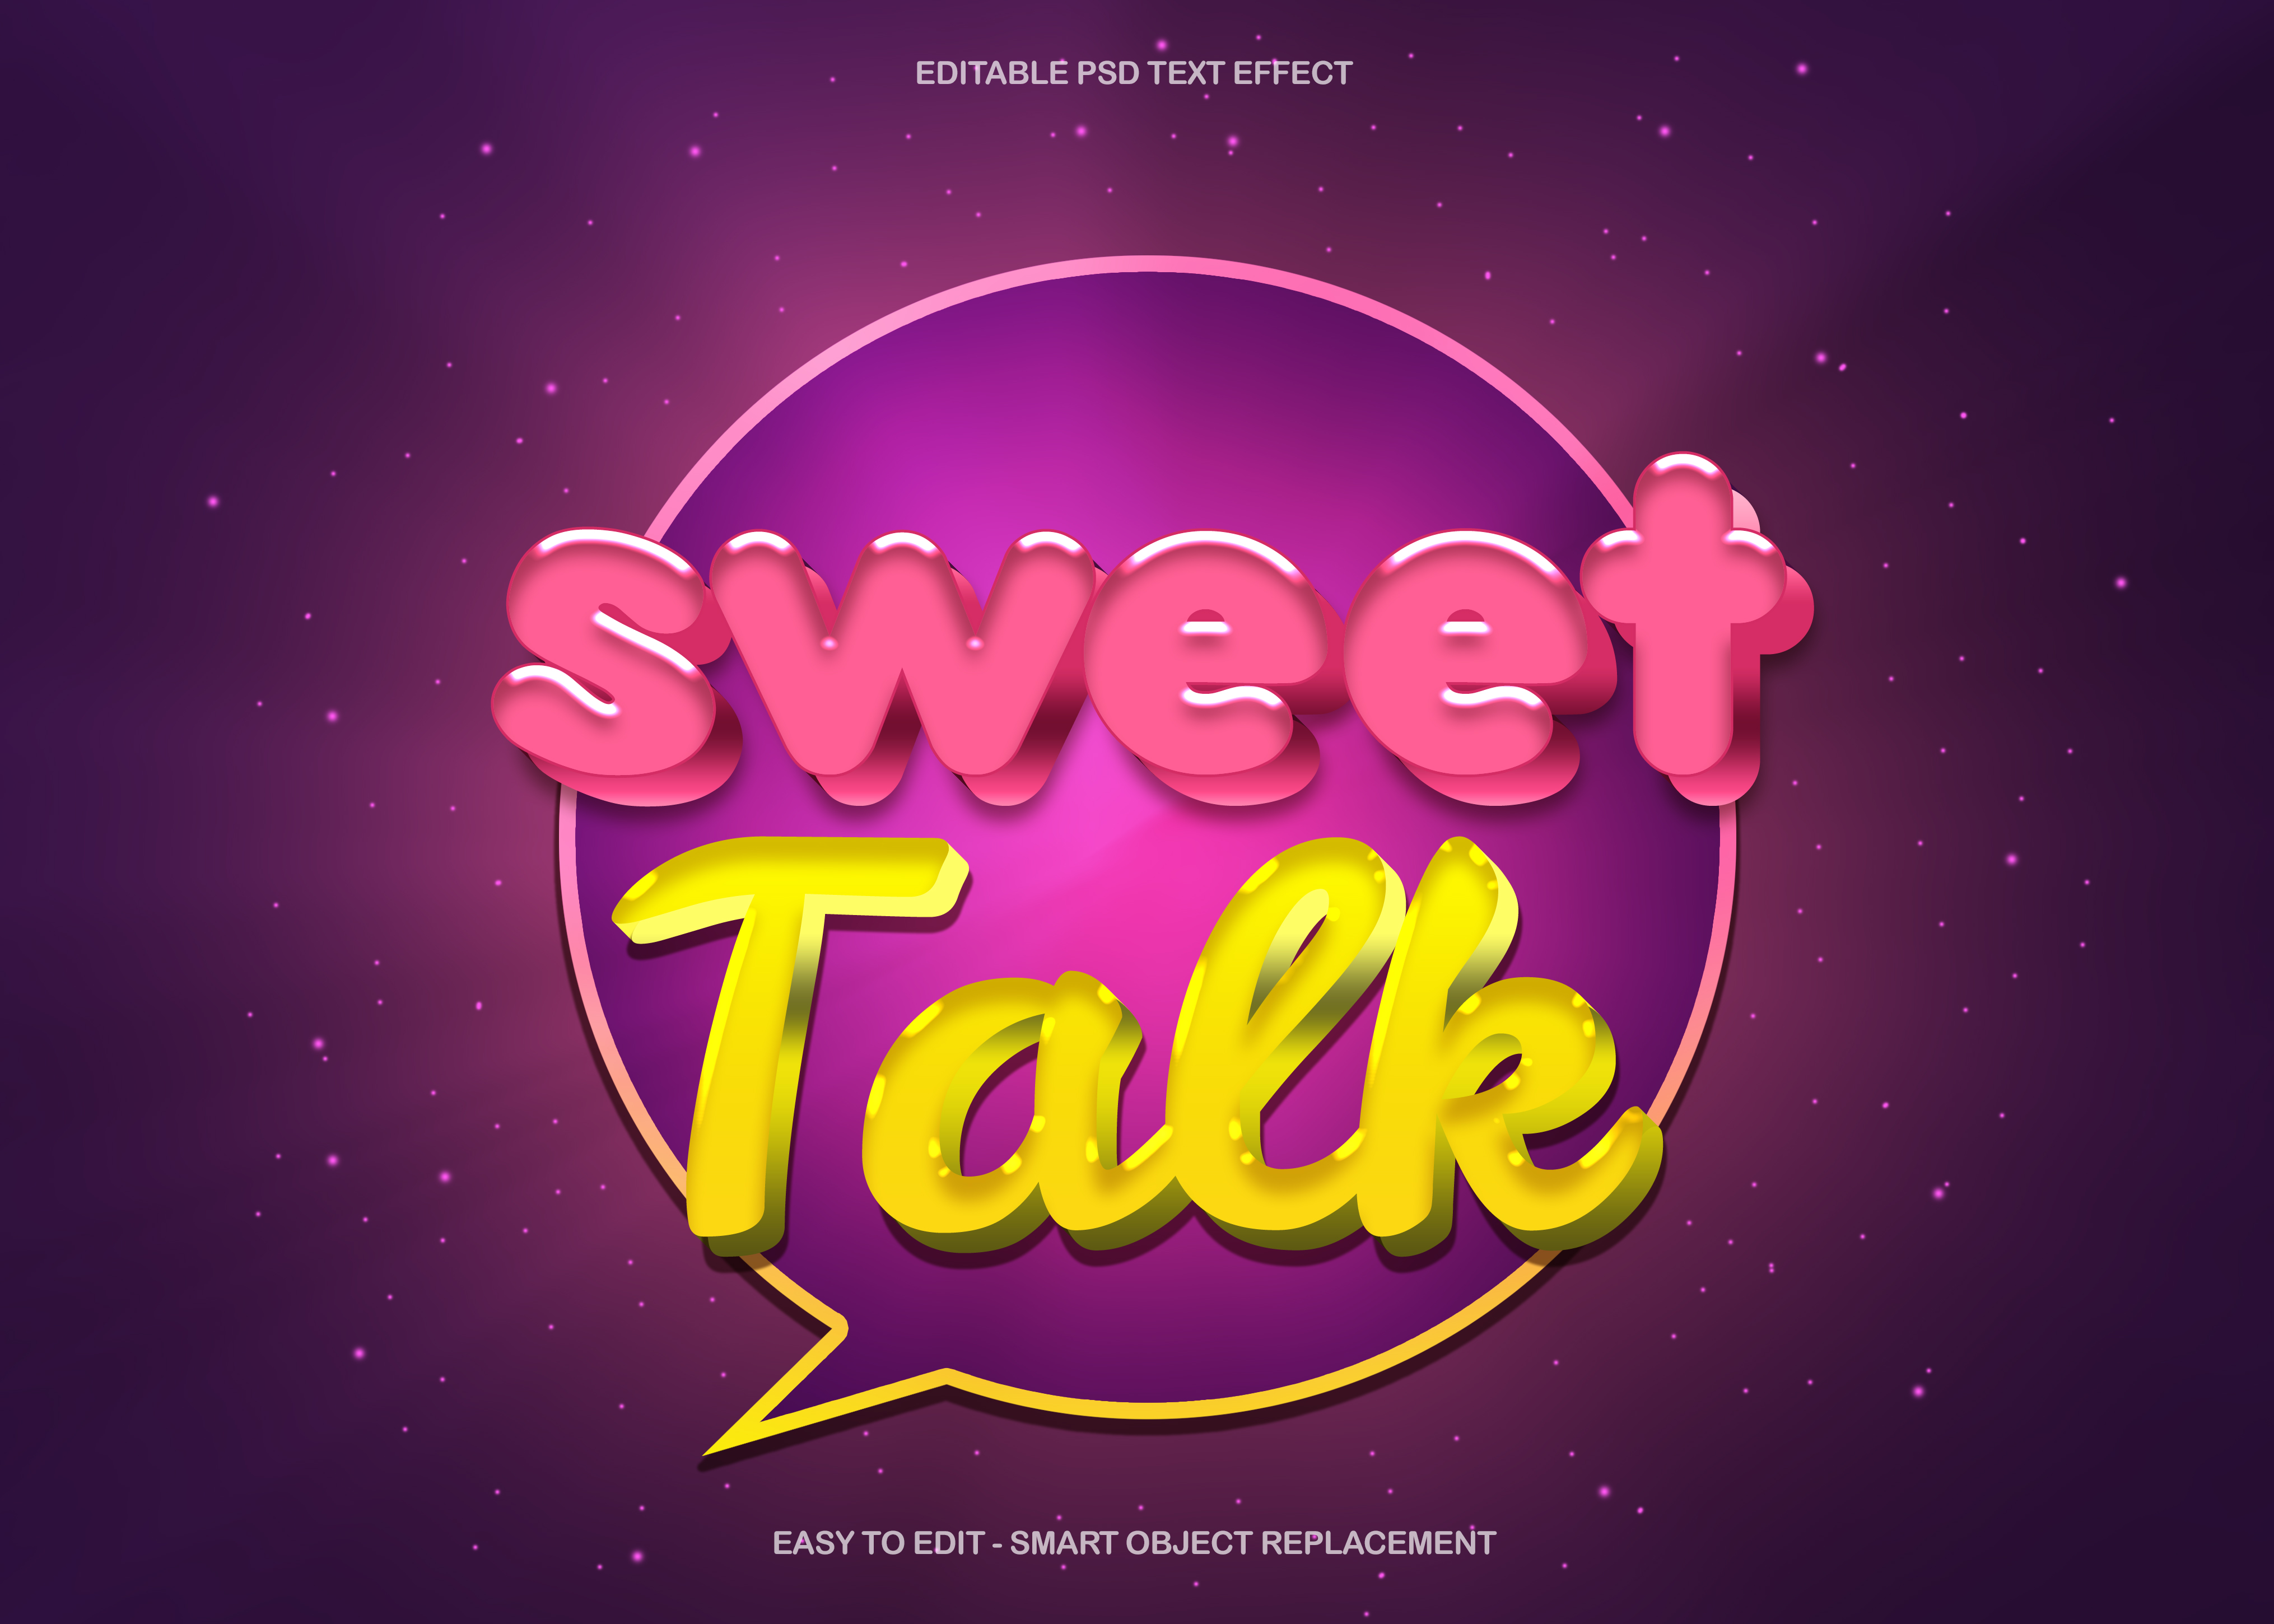 Download Free Sweet Talk Podcast Text Effect Graphic By Knou Creative Fabrica for Cricut Explore, Silhouette and other cutting machines.